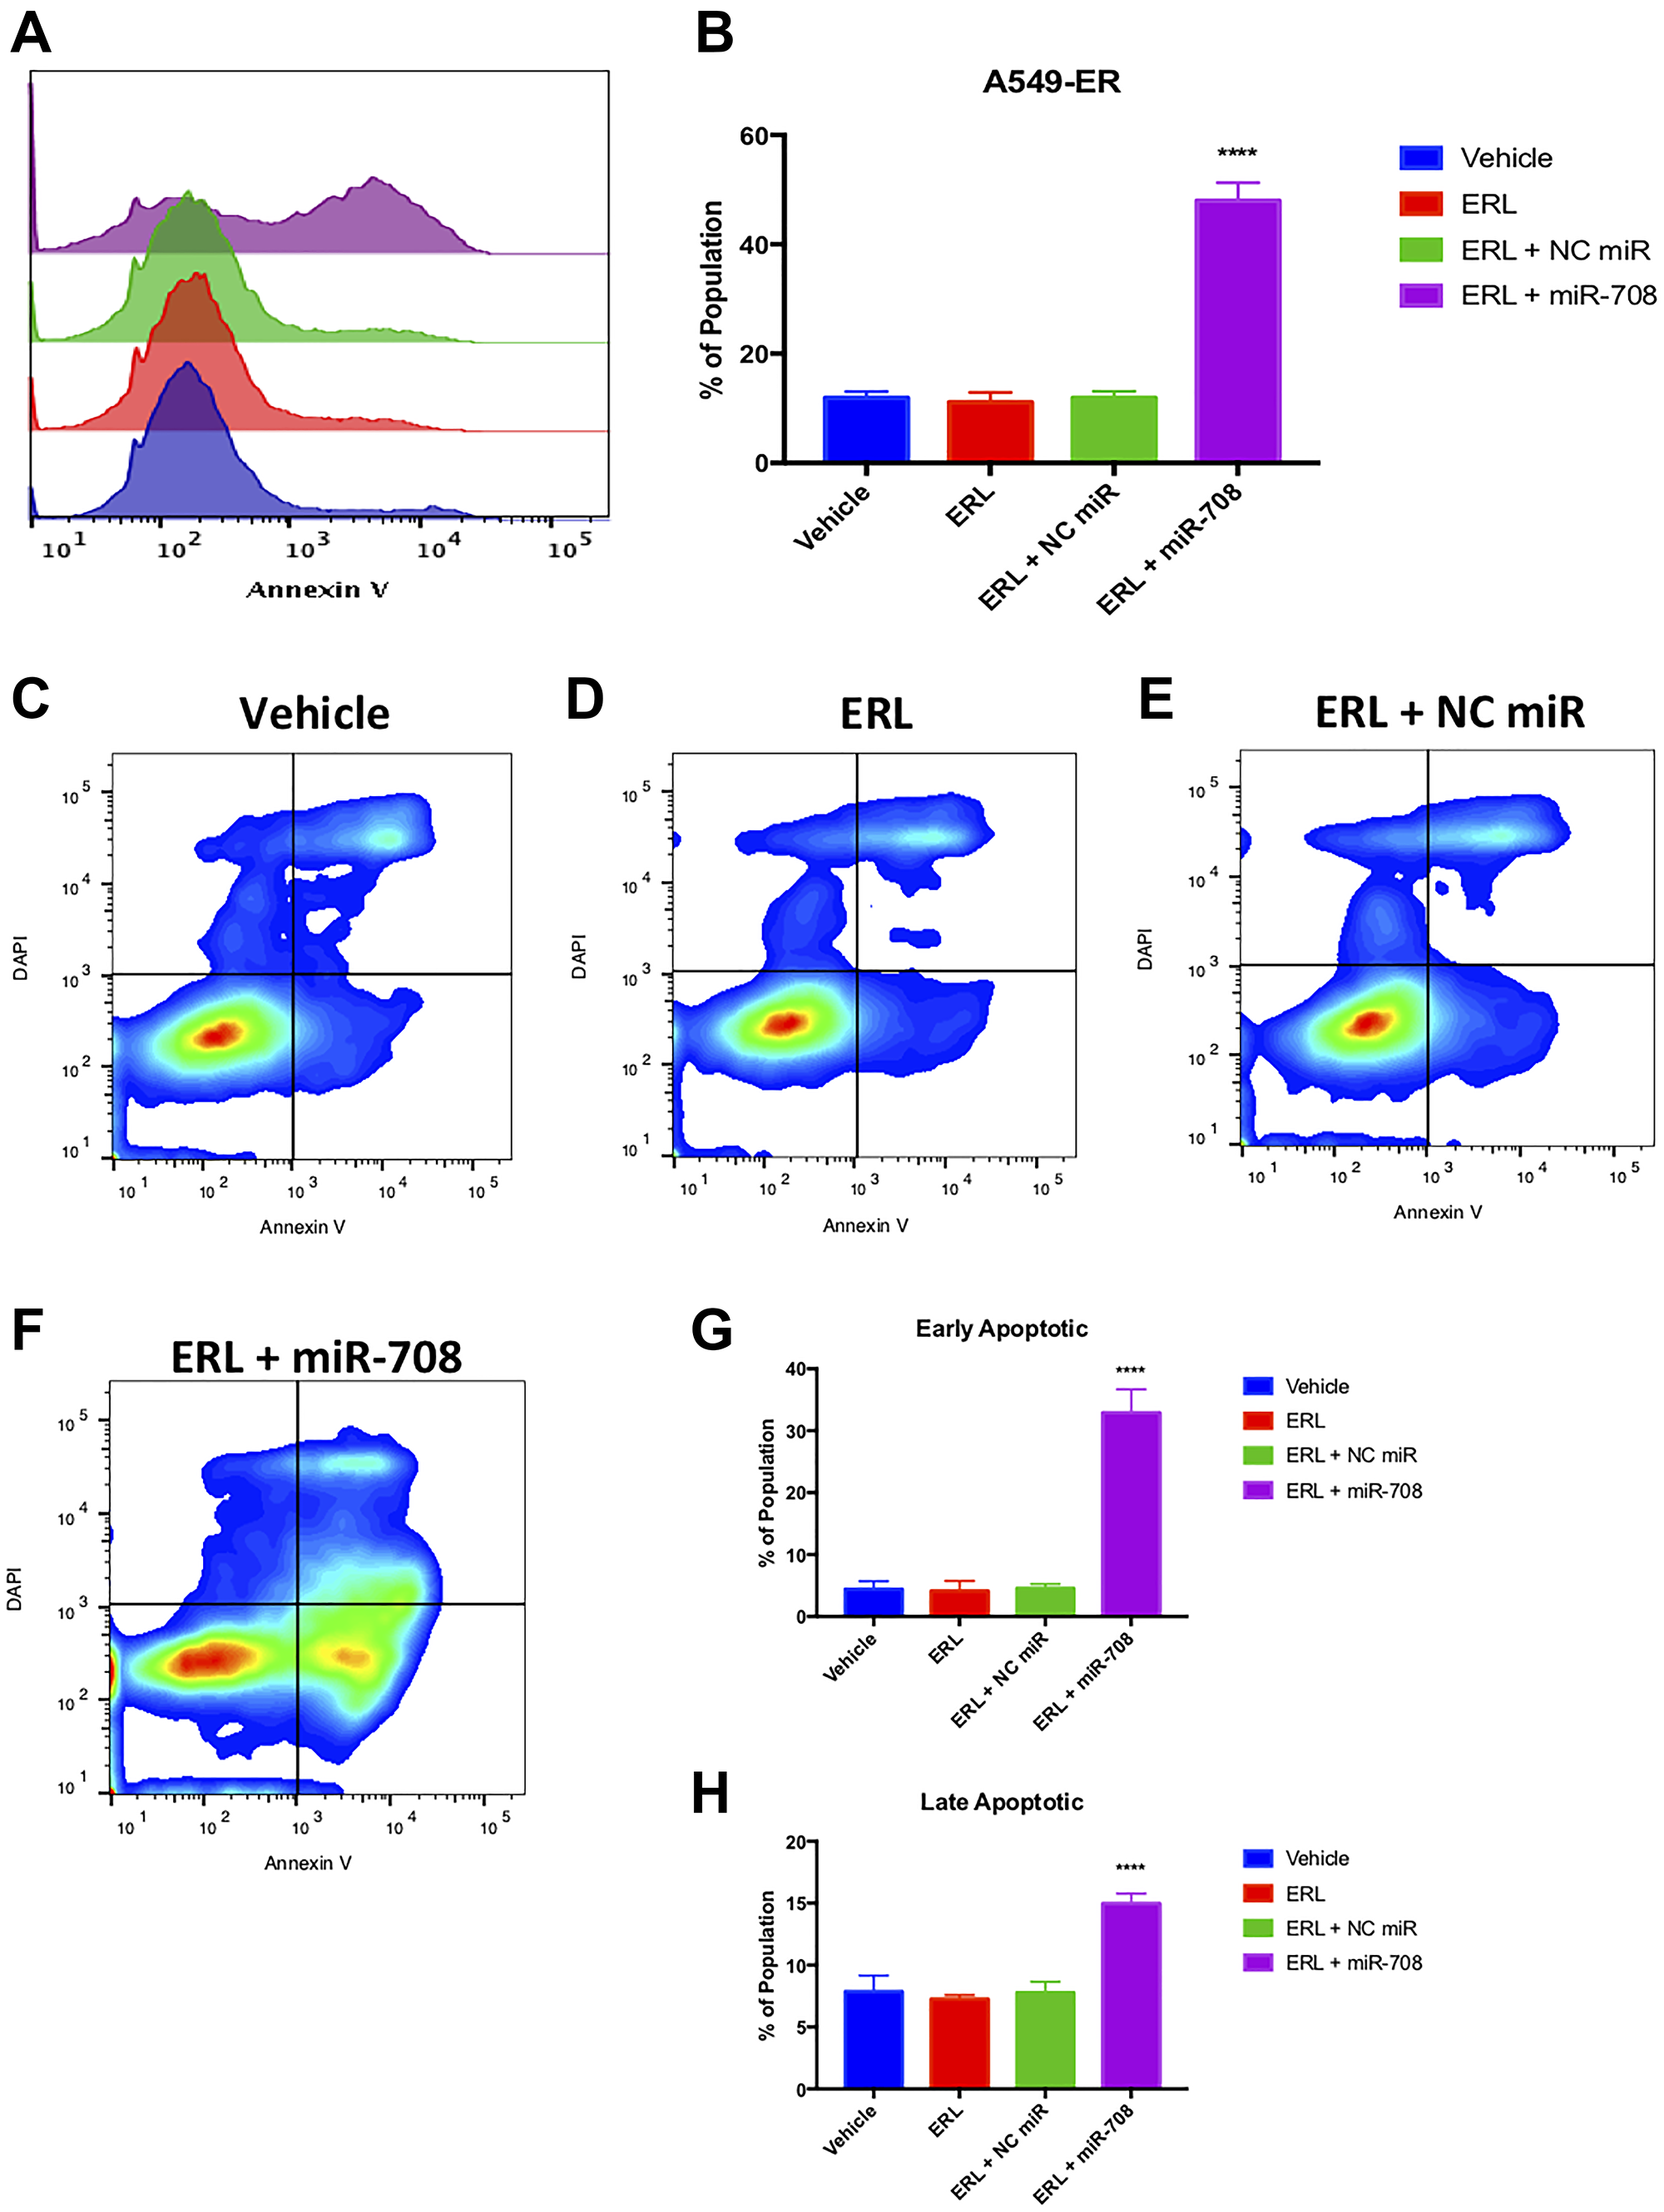 Combinatory miR-708-5p + ERL treatment induces apoptosis in A549-ER cells.